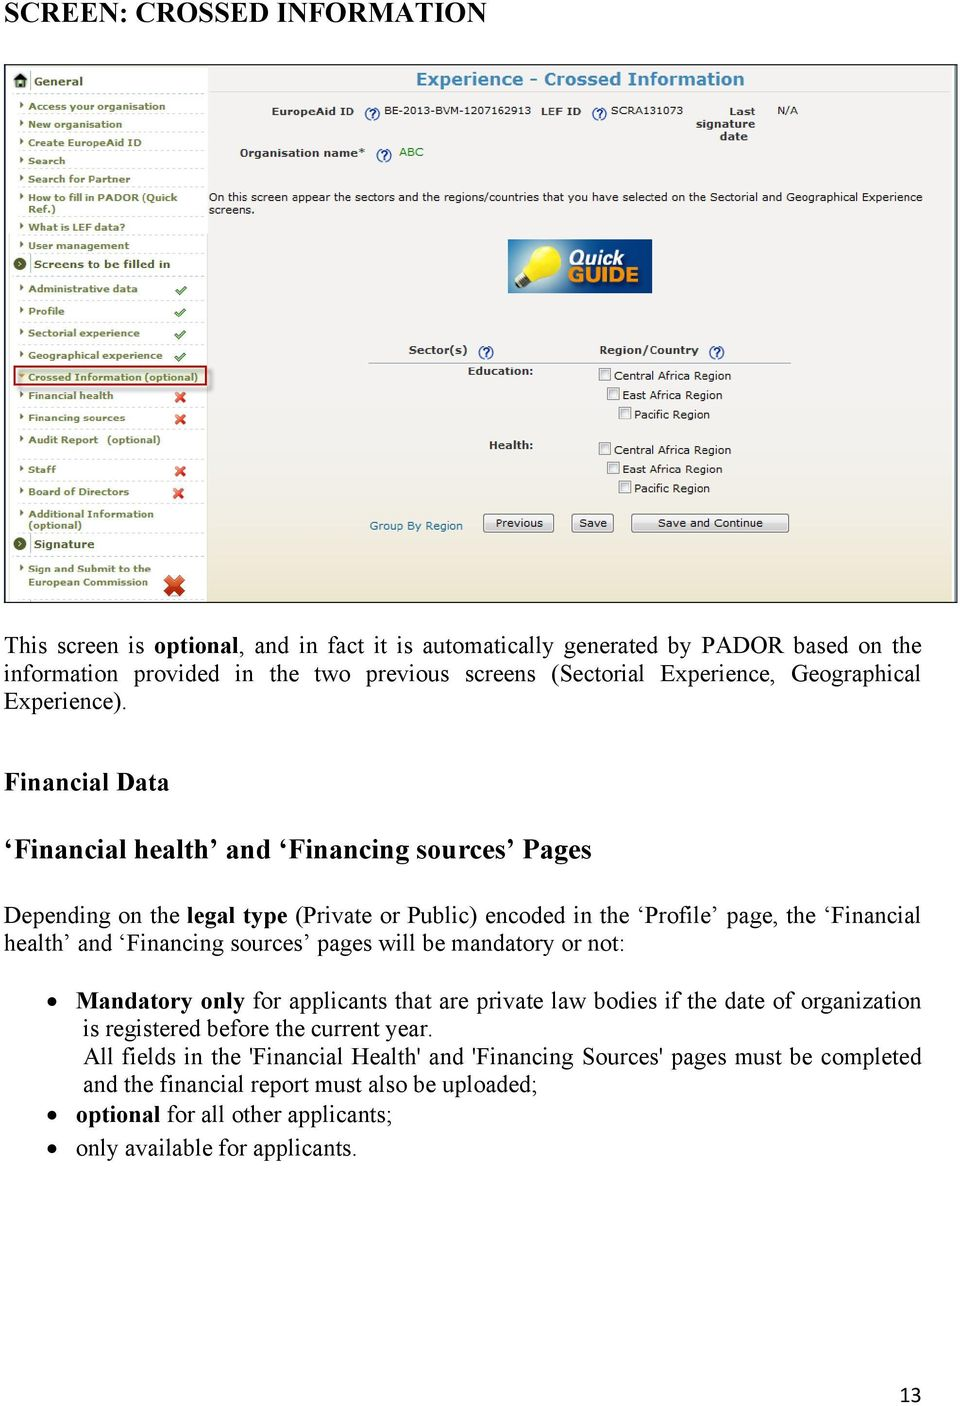 Financial Data Financial health and Financing sources Pages Depending on the legal type (Private or Public) encoded in the Profile page, the Financial health and Financing sources pages